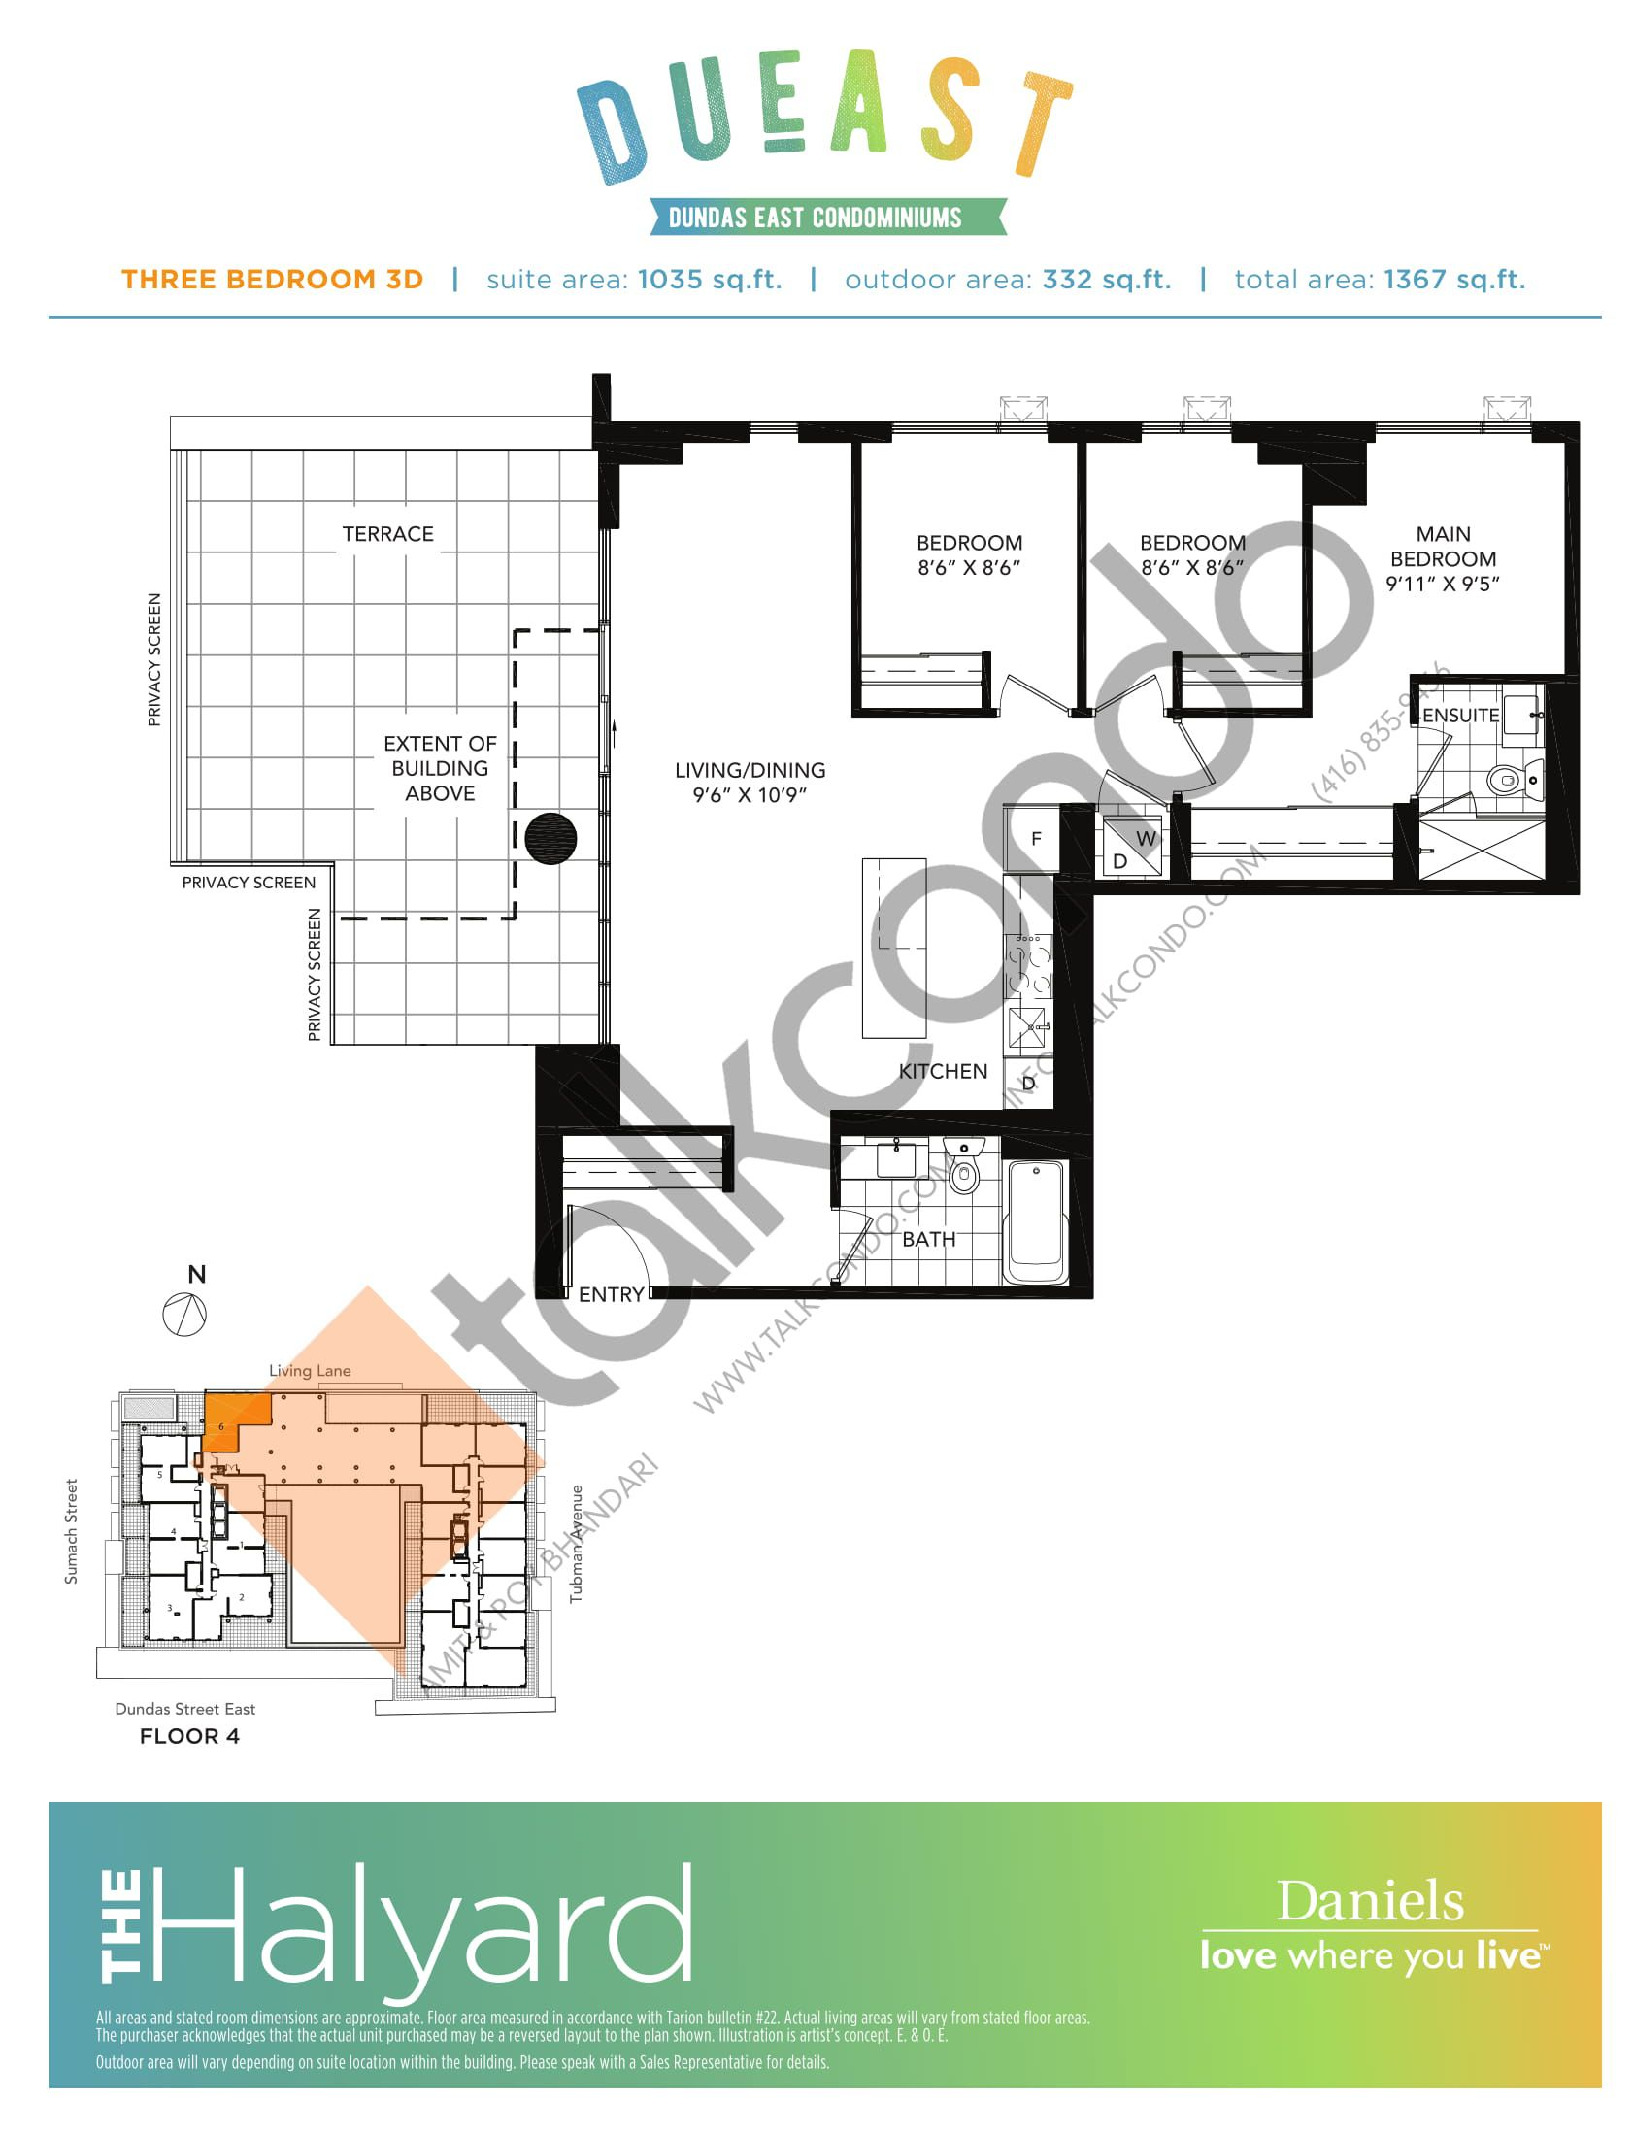 The Halyard 3D Floor Plan at DuEast Condos - 1035 sq.ft